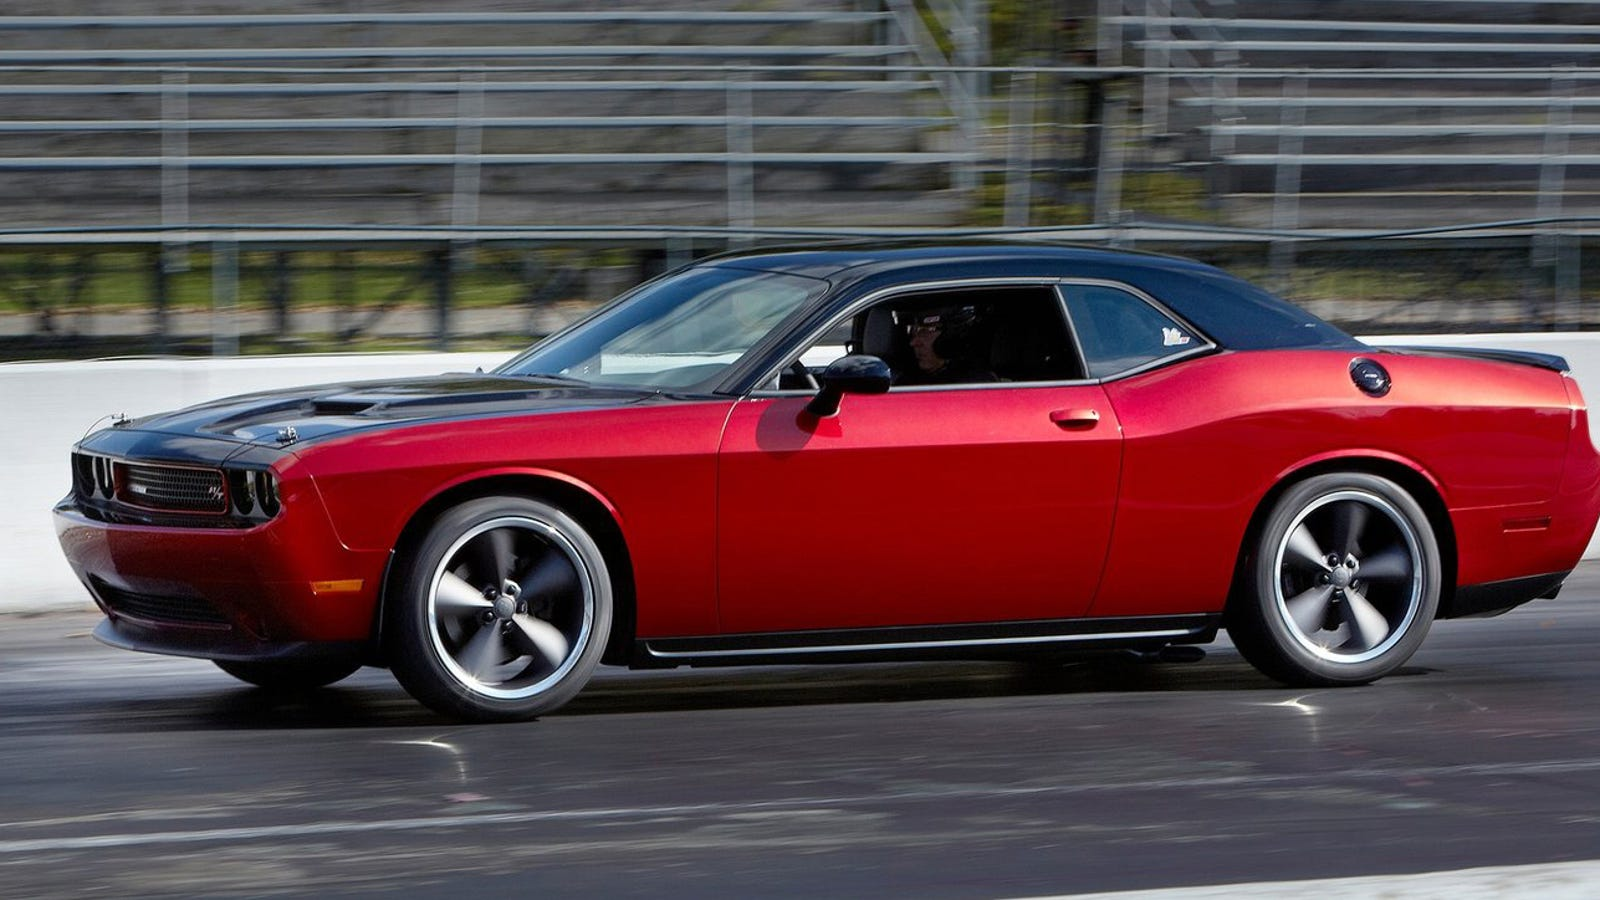 Scat Pack\' Name Leads To Crappy Legal Battle For Dodge